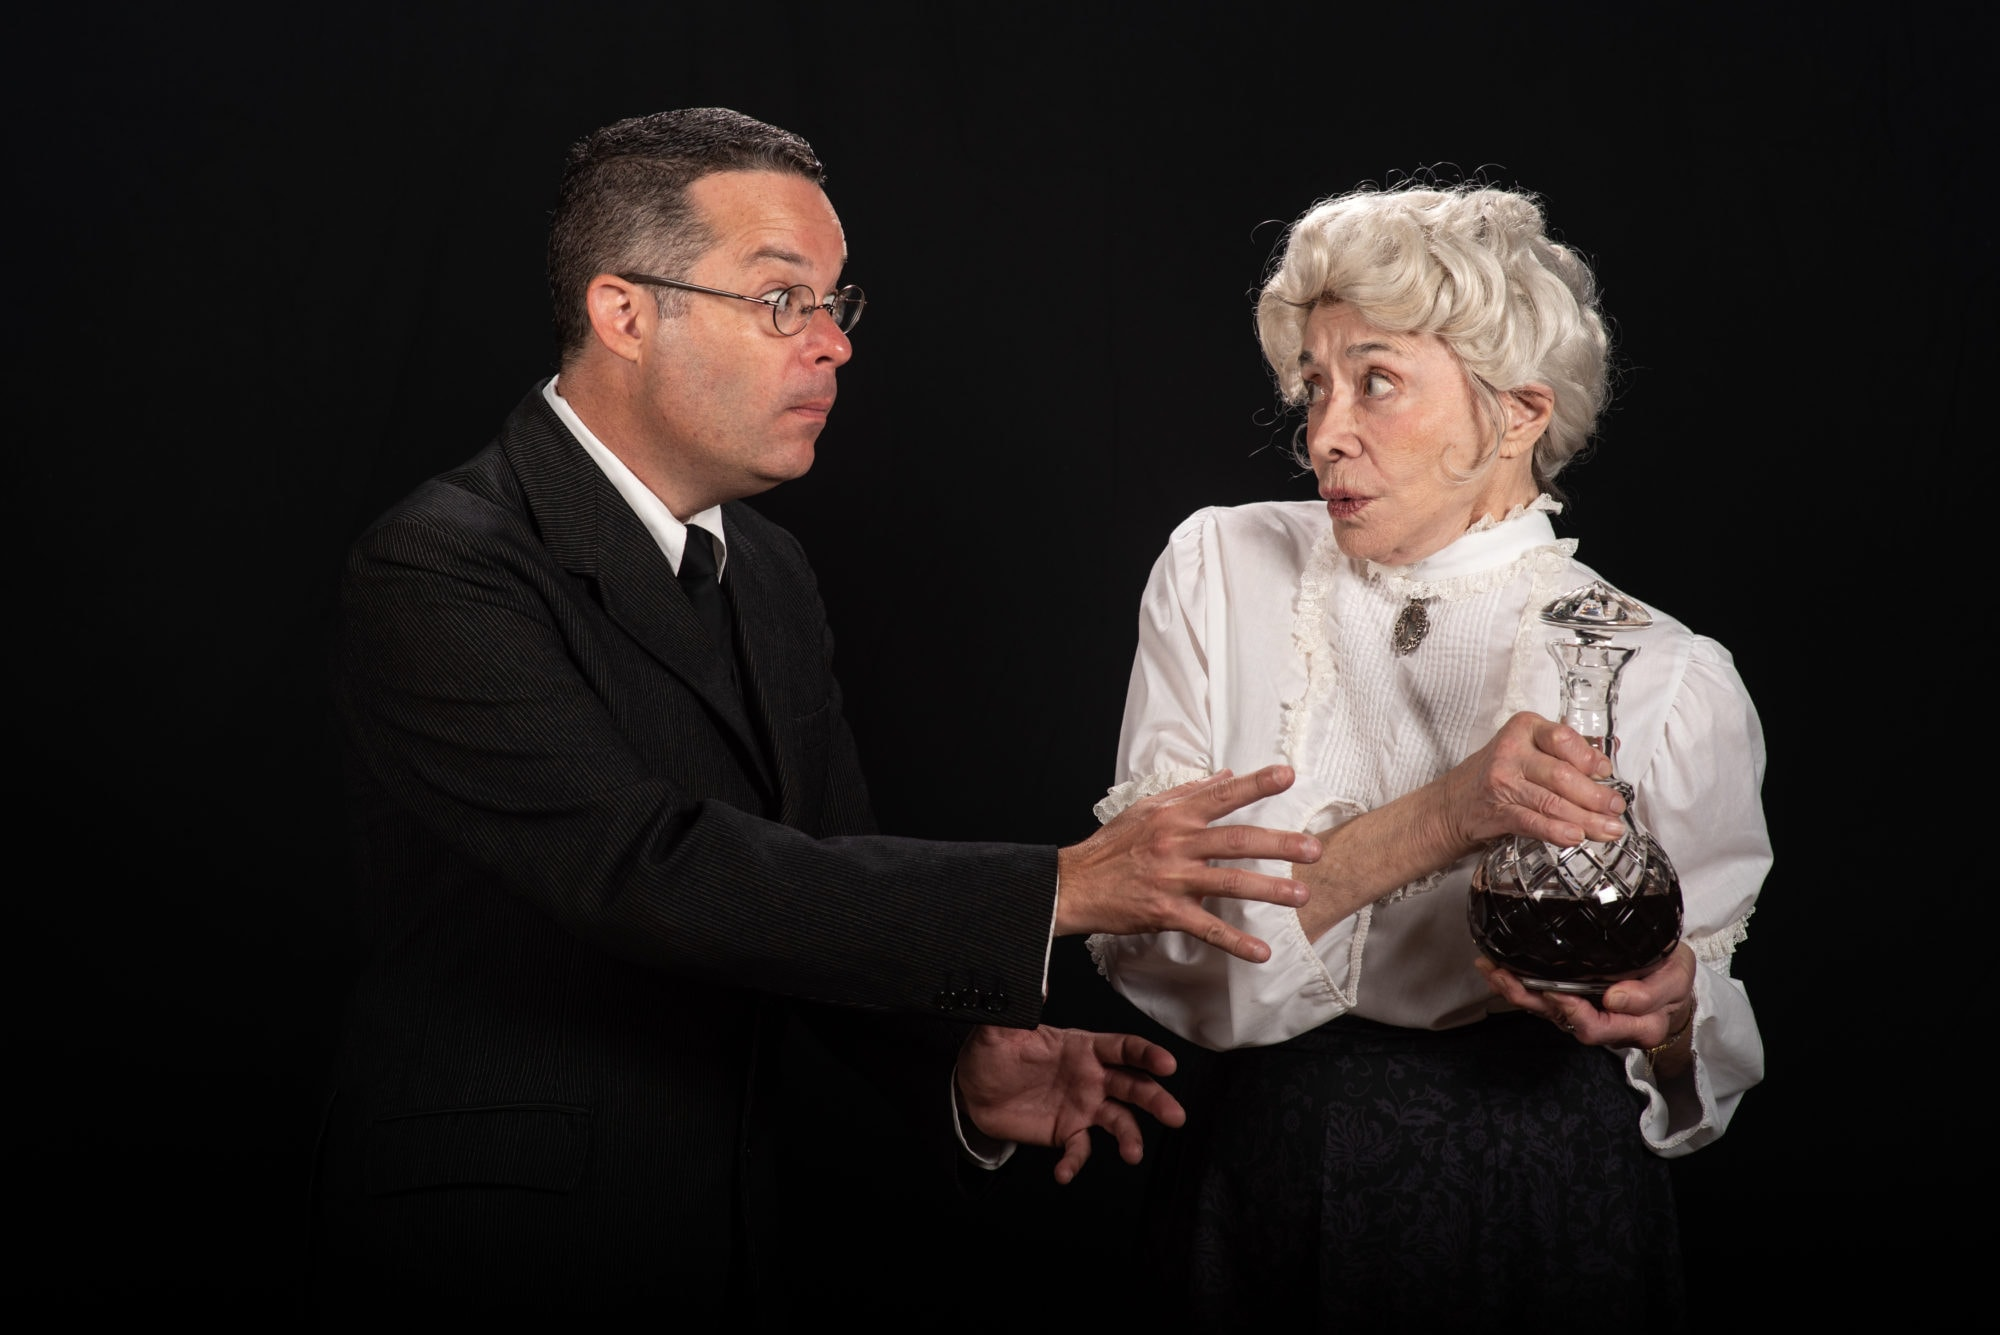 Dann Alagna as Mortimer Brewster and Mary Suib as Martha Brewster in 'Arsenic and Old Lace' at The Colonial Players of Annapolis. Photo by Alison Harbaugh, Sugar Farm Productions.